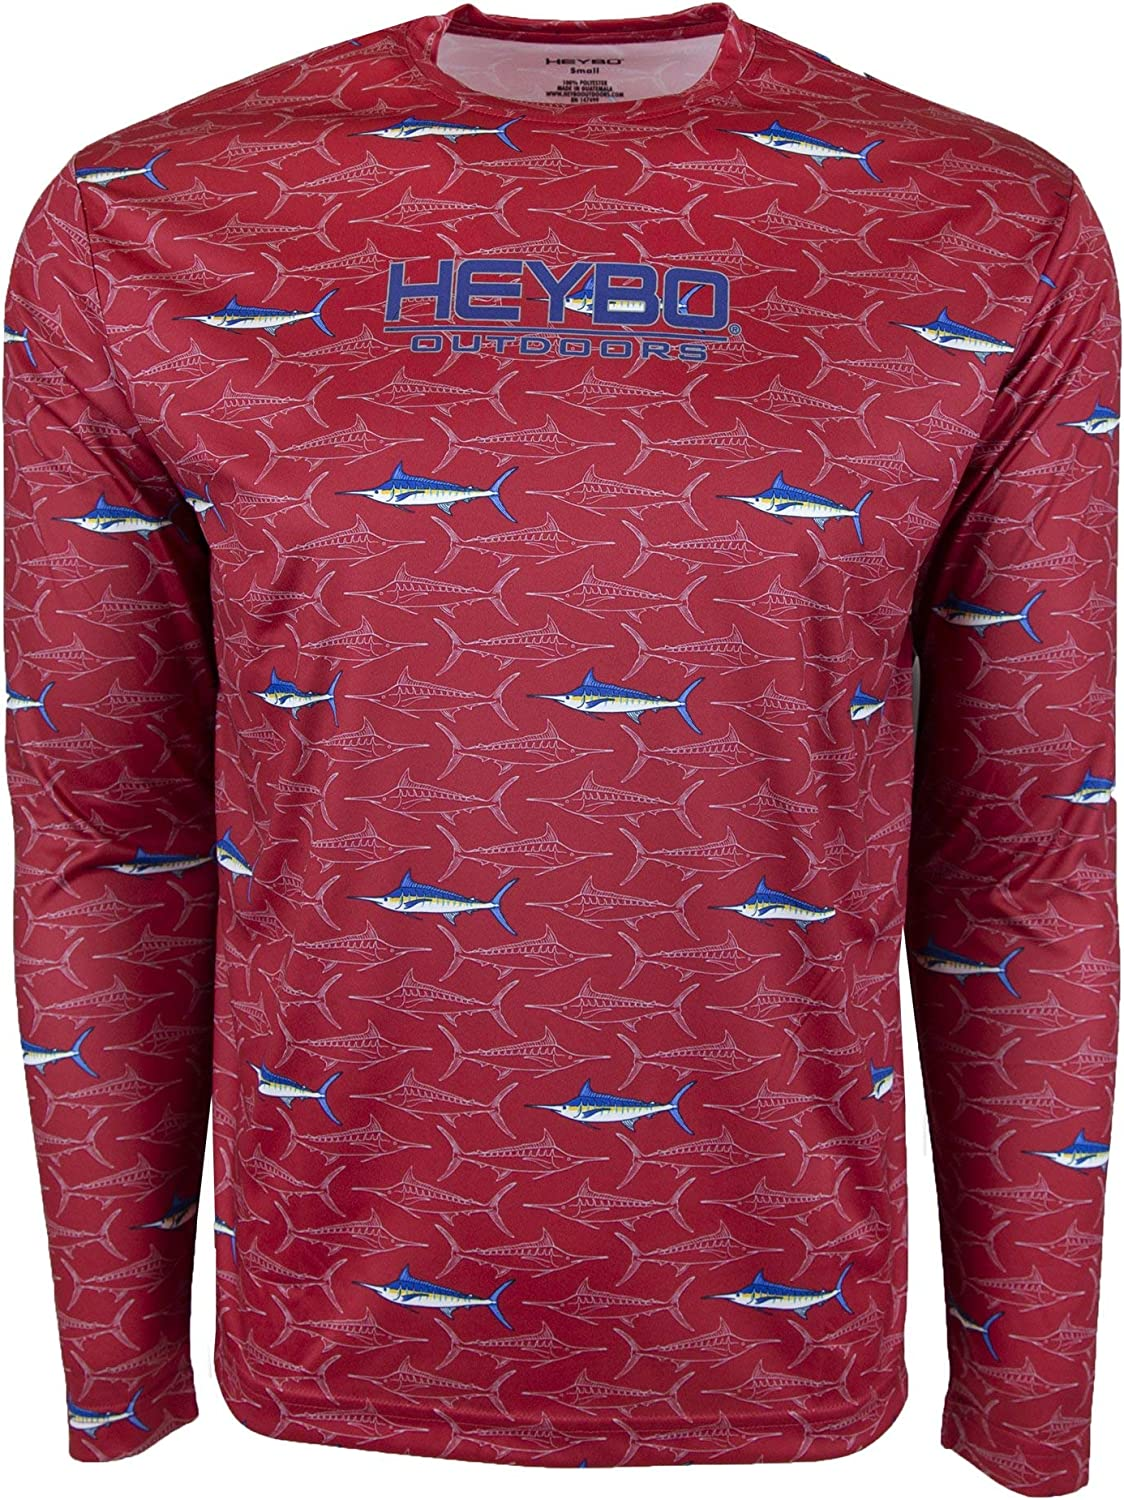 Super beauty product restock quality top Heybo Pursuit Long Sleeve Special sale item T-Shirt Performance